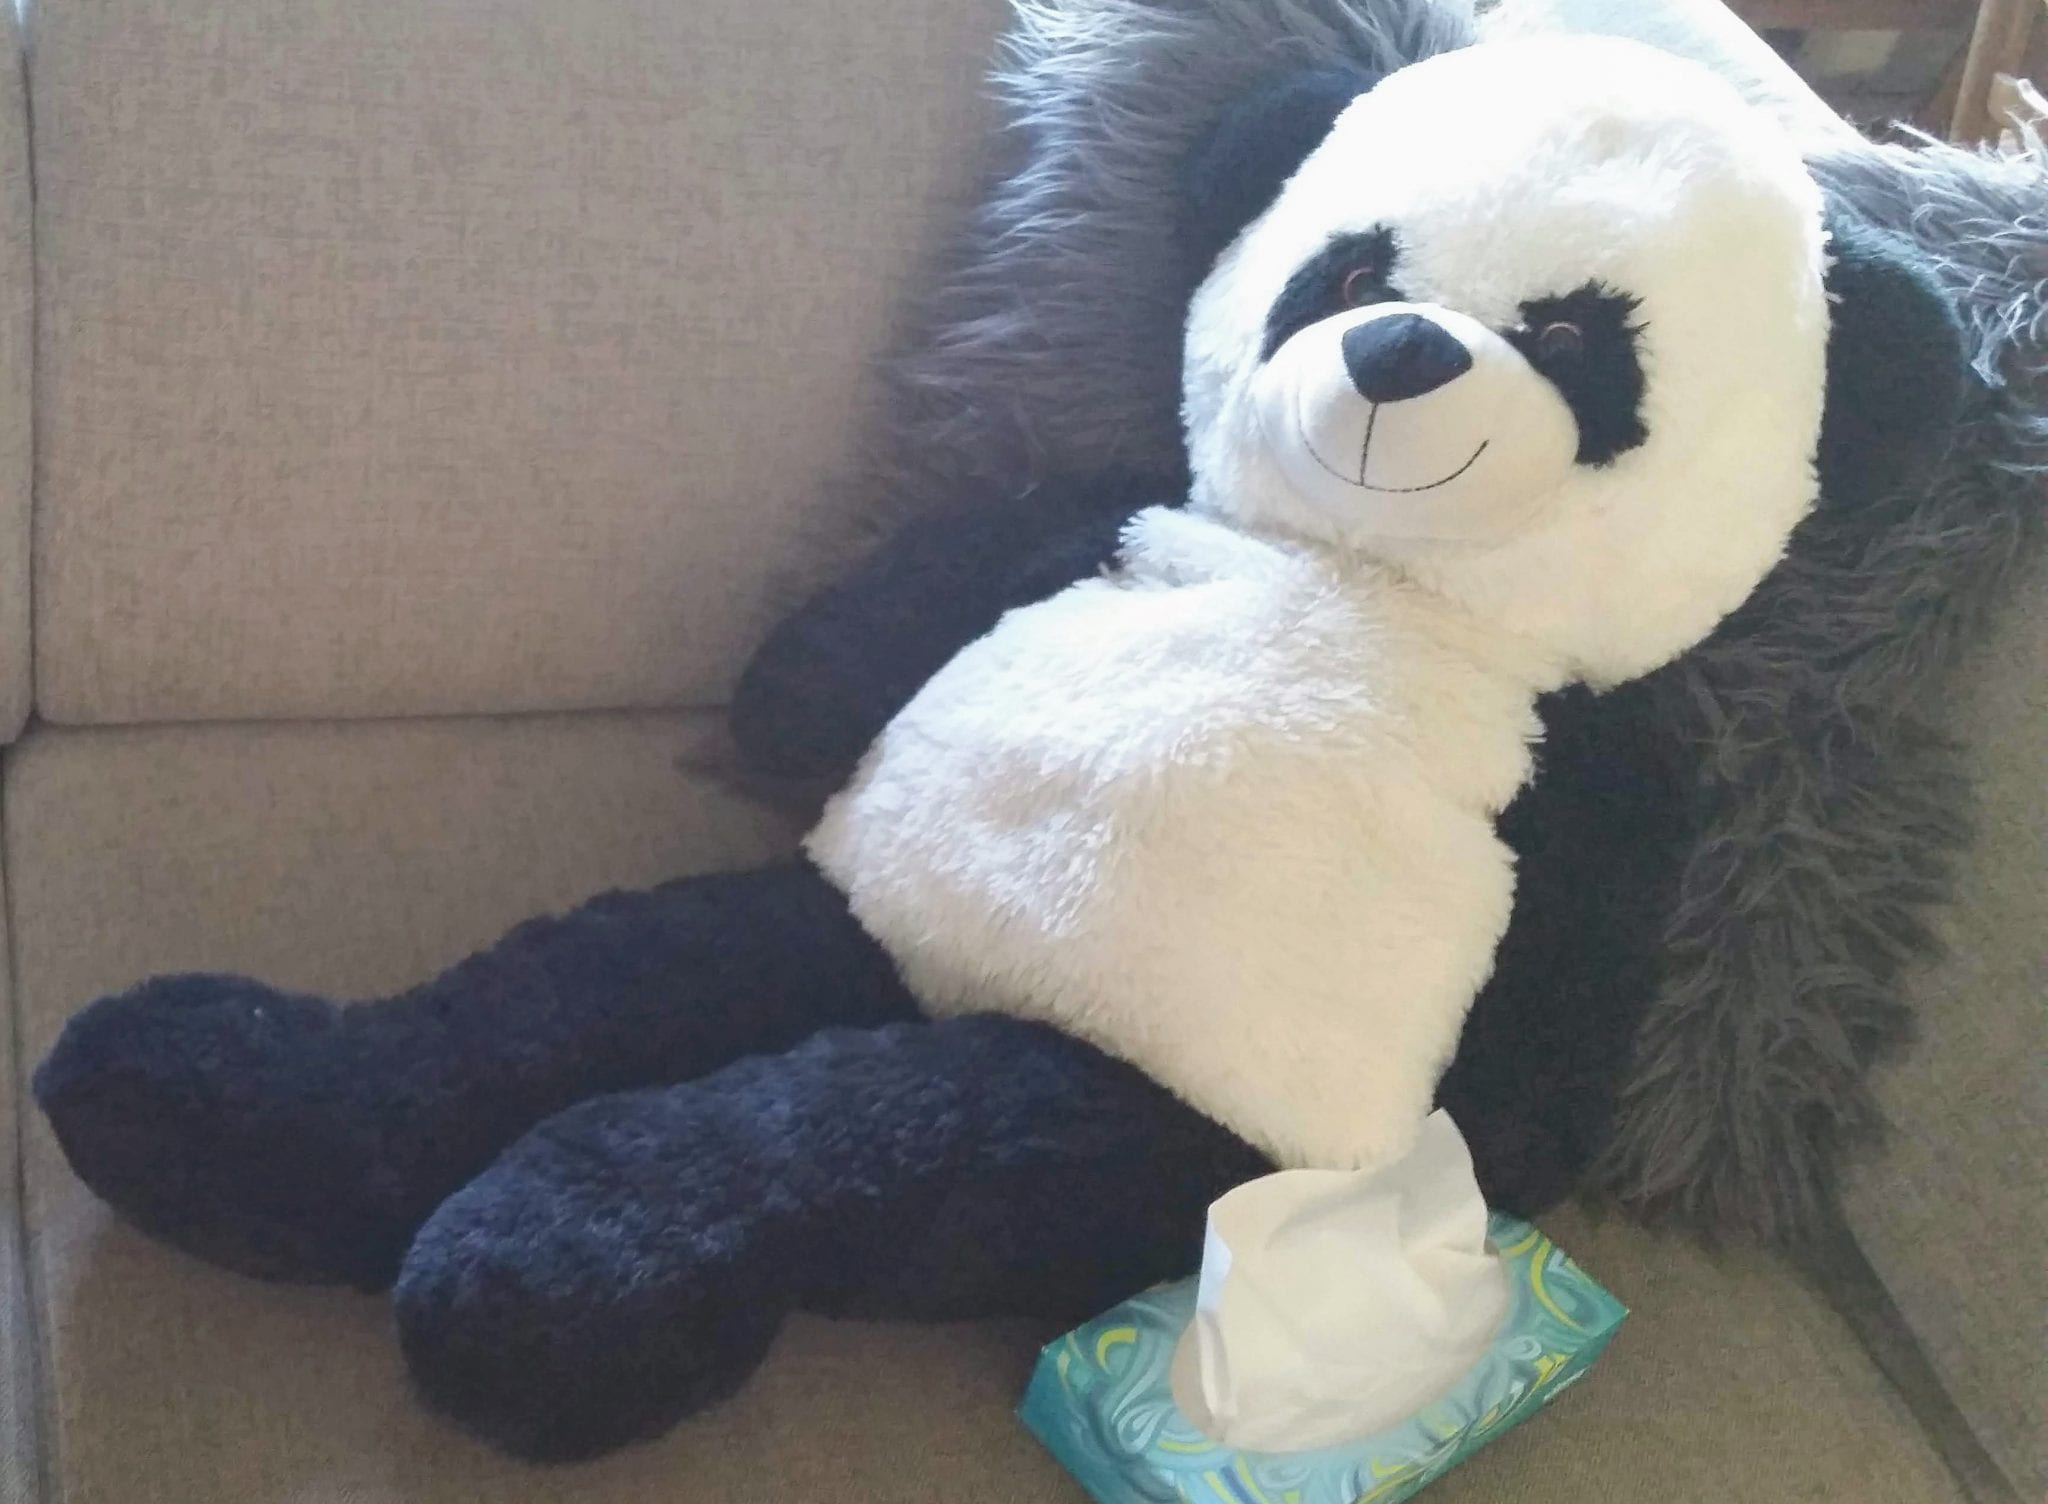 Big cuddley toy panda on couch